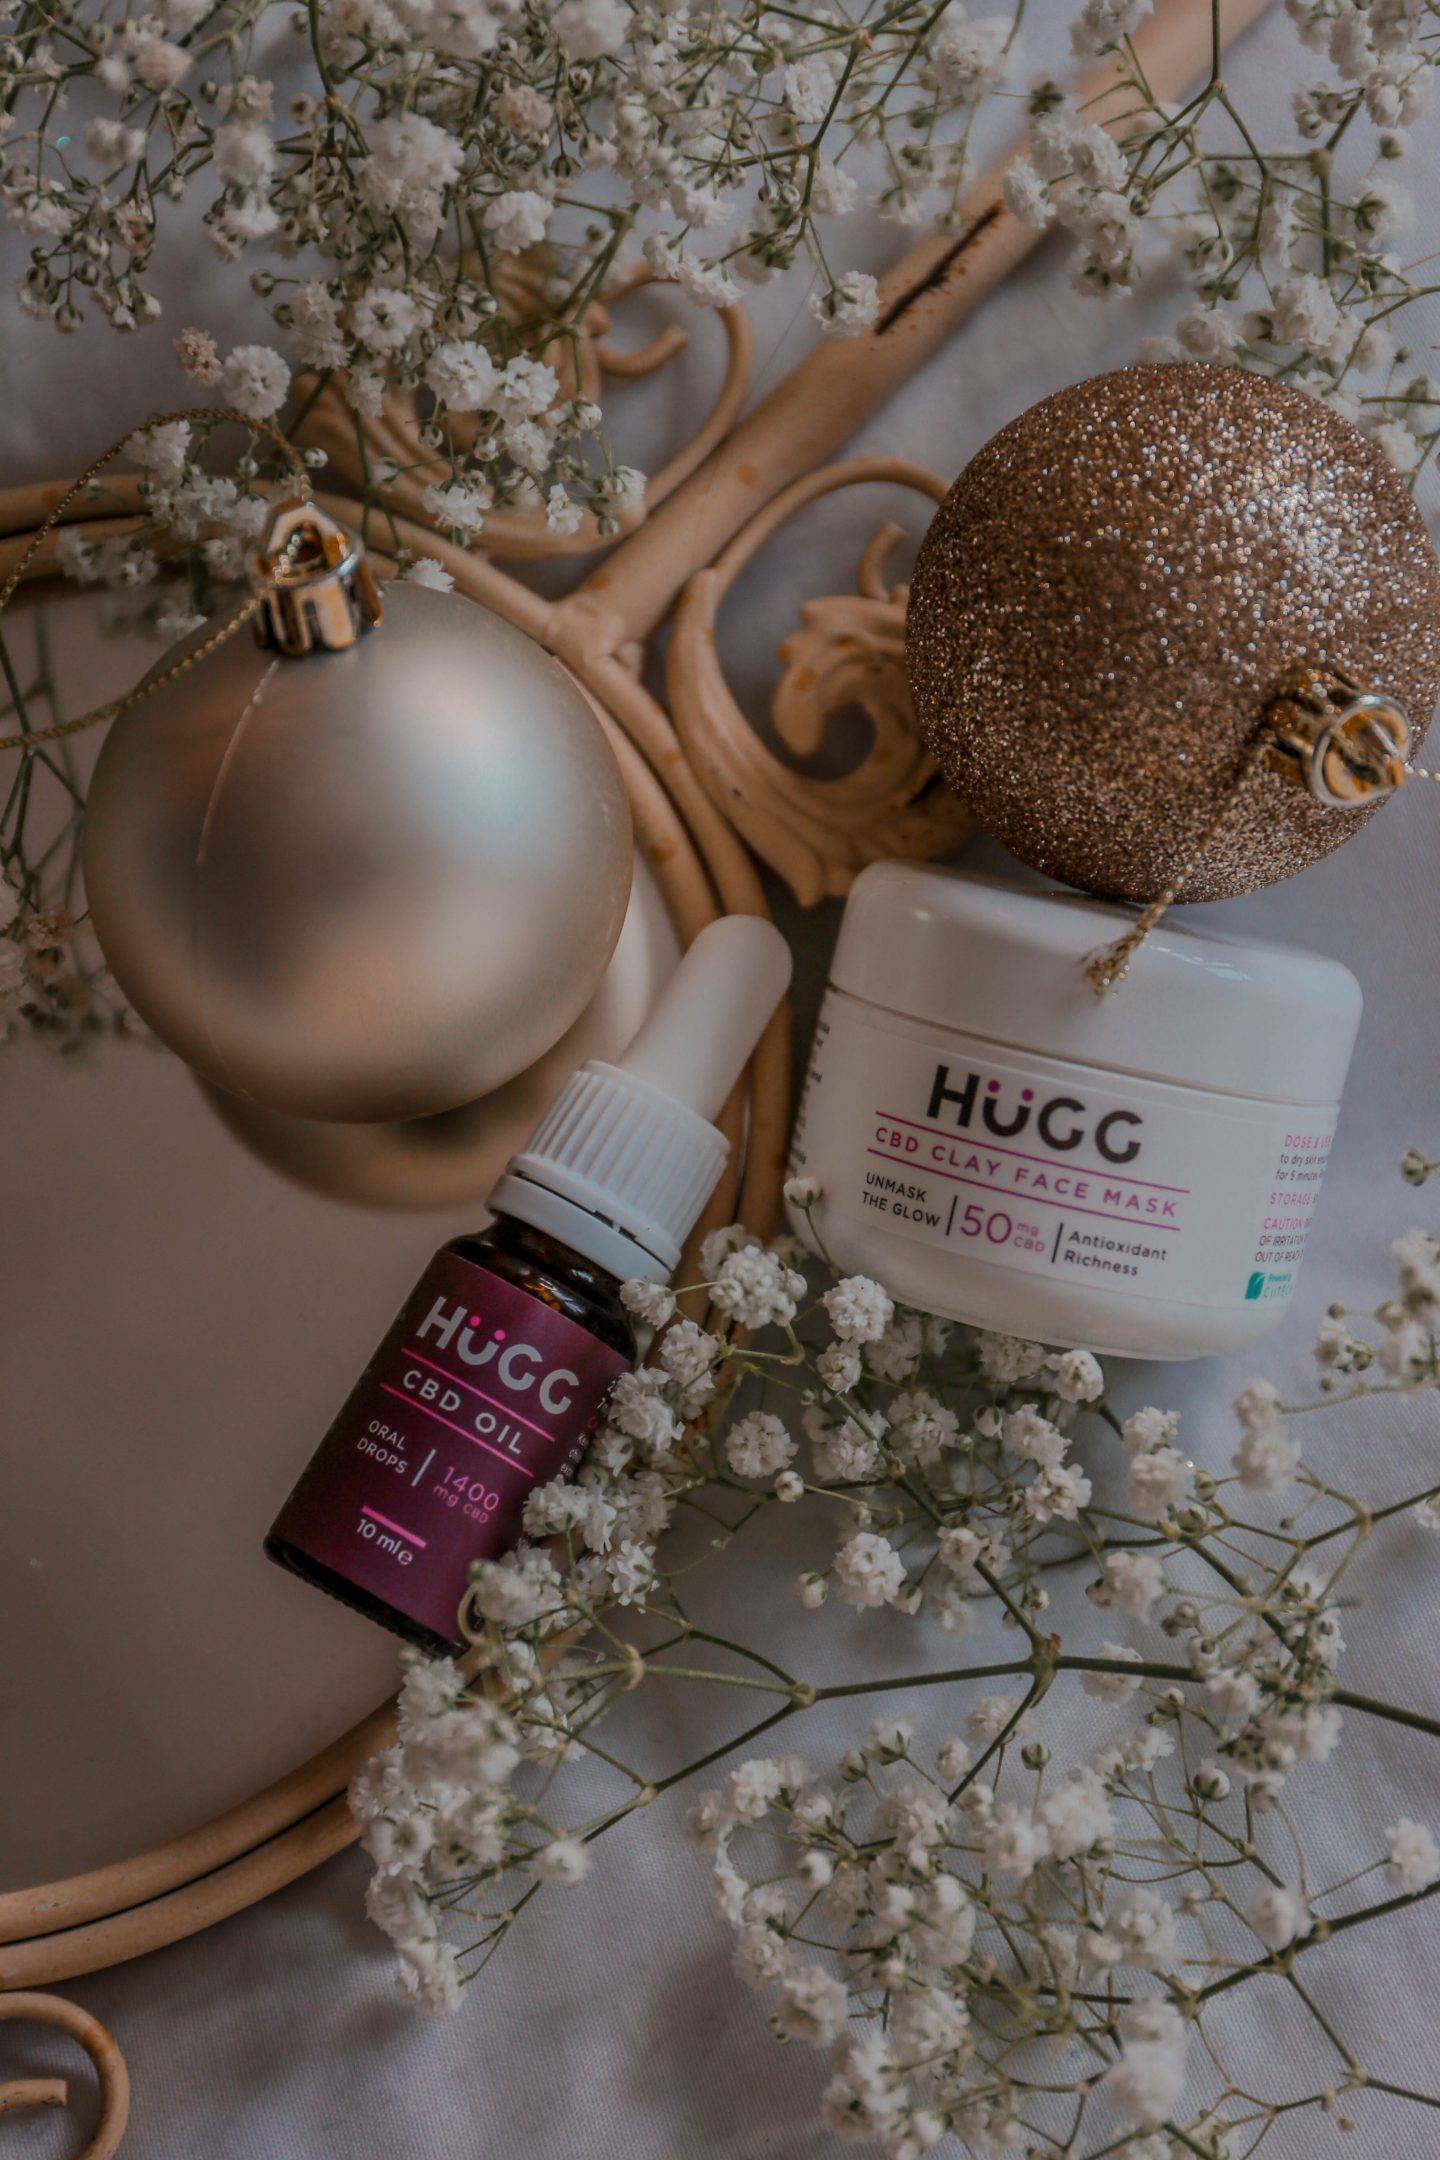 HUGG My Christmas Gift Guide 2019